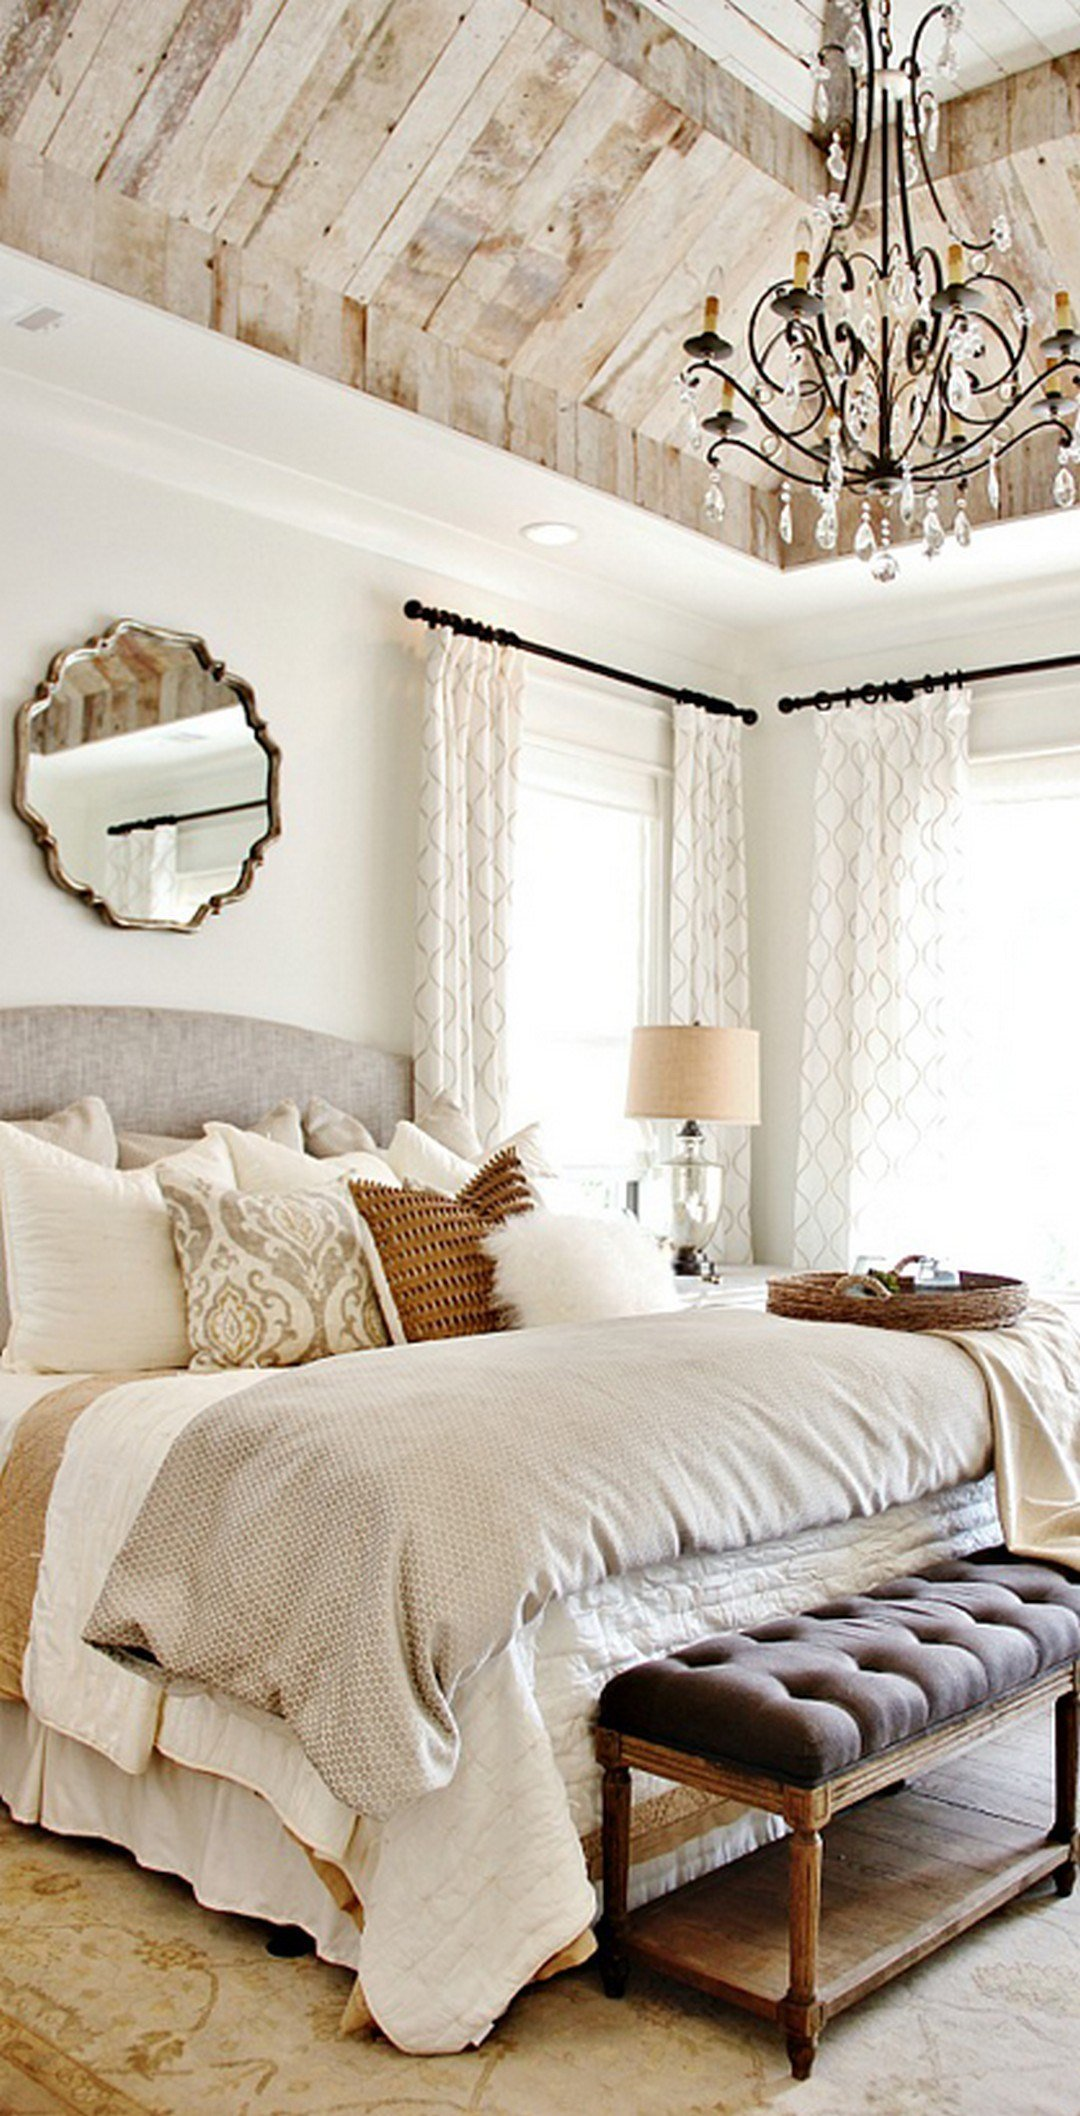 Best Rustic Farmhouse Bedroom Decorating Ideas To Transform With Pictures